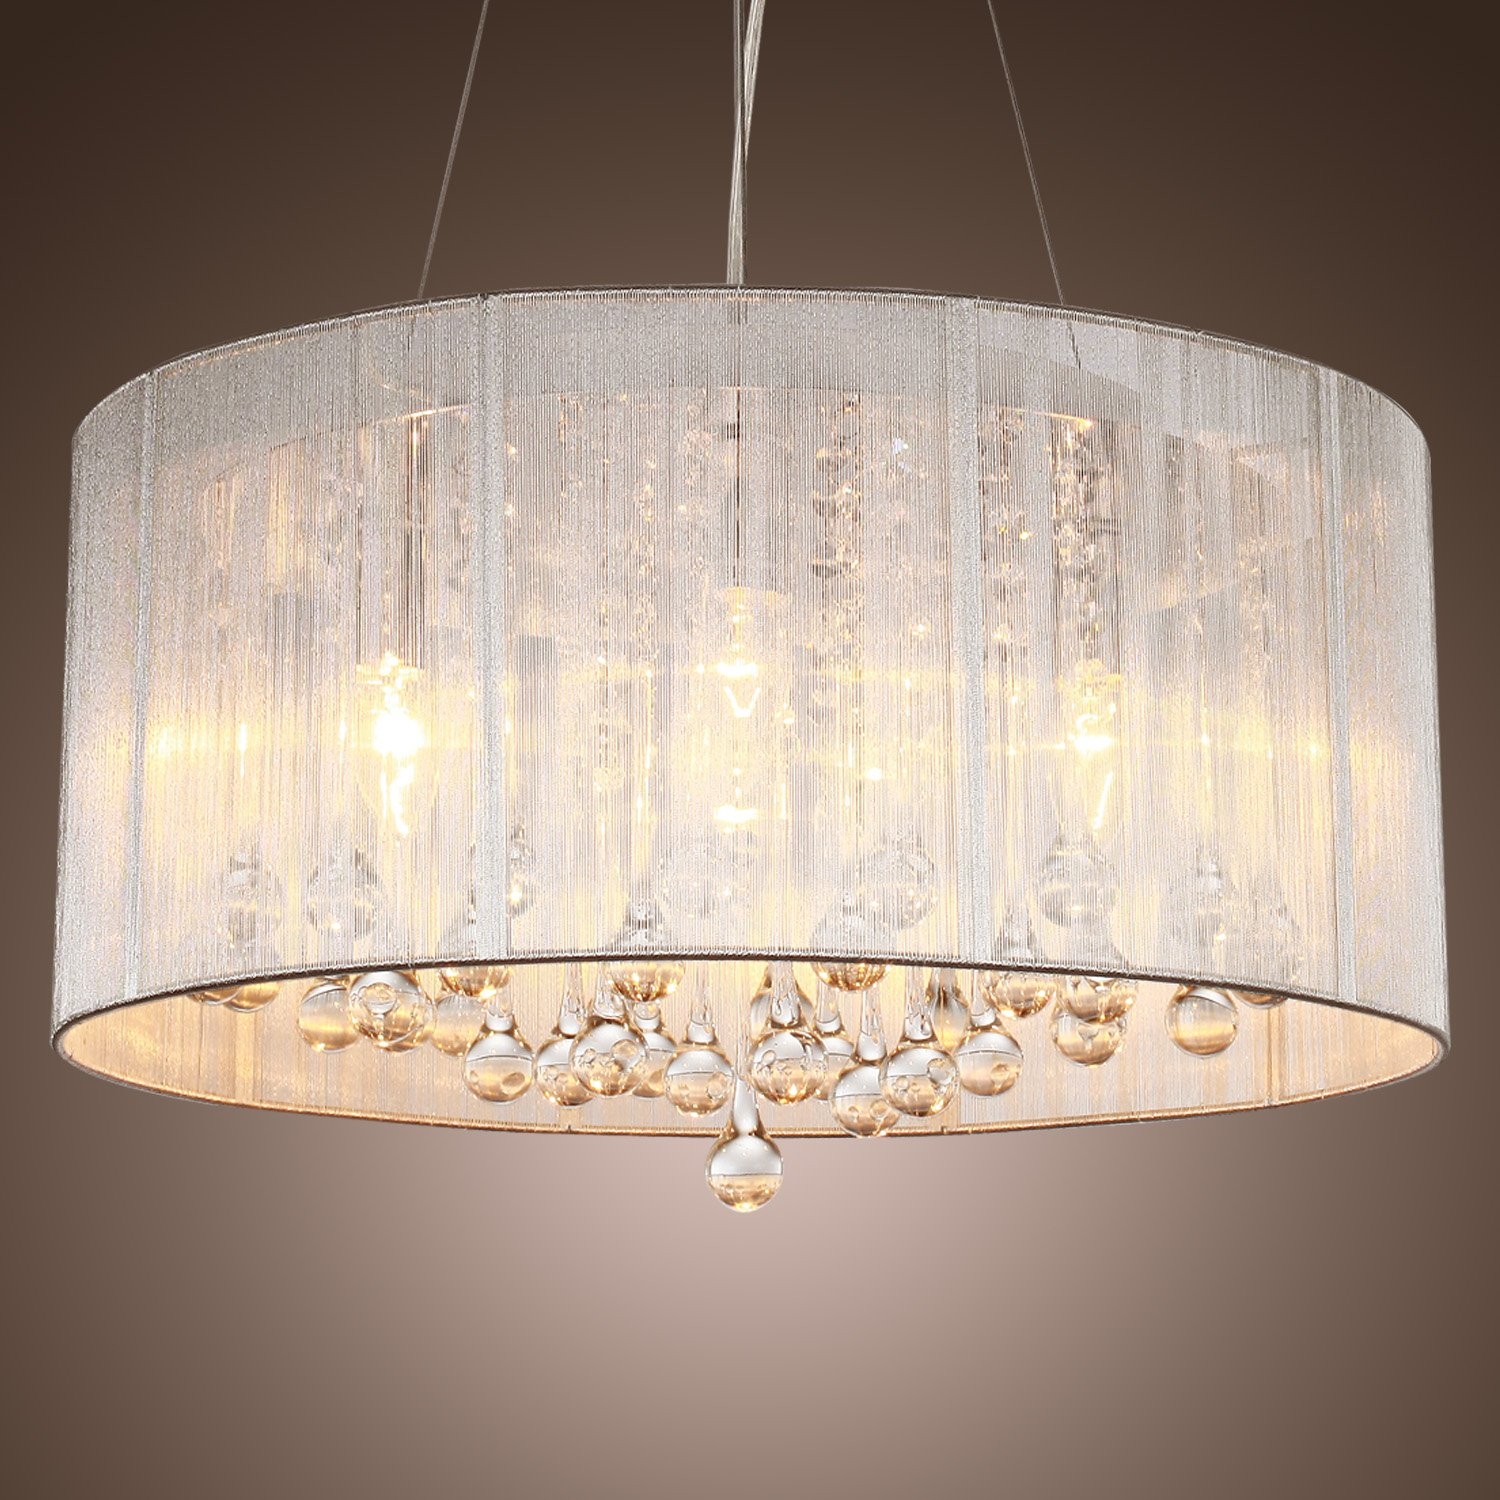 fixture decor ceiling in chandeliers of chandelier oil bronze azha shade with light shades drum prepare crystal rubbed